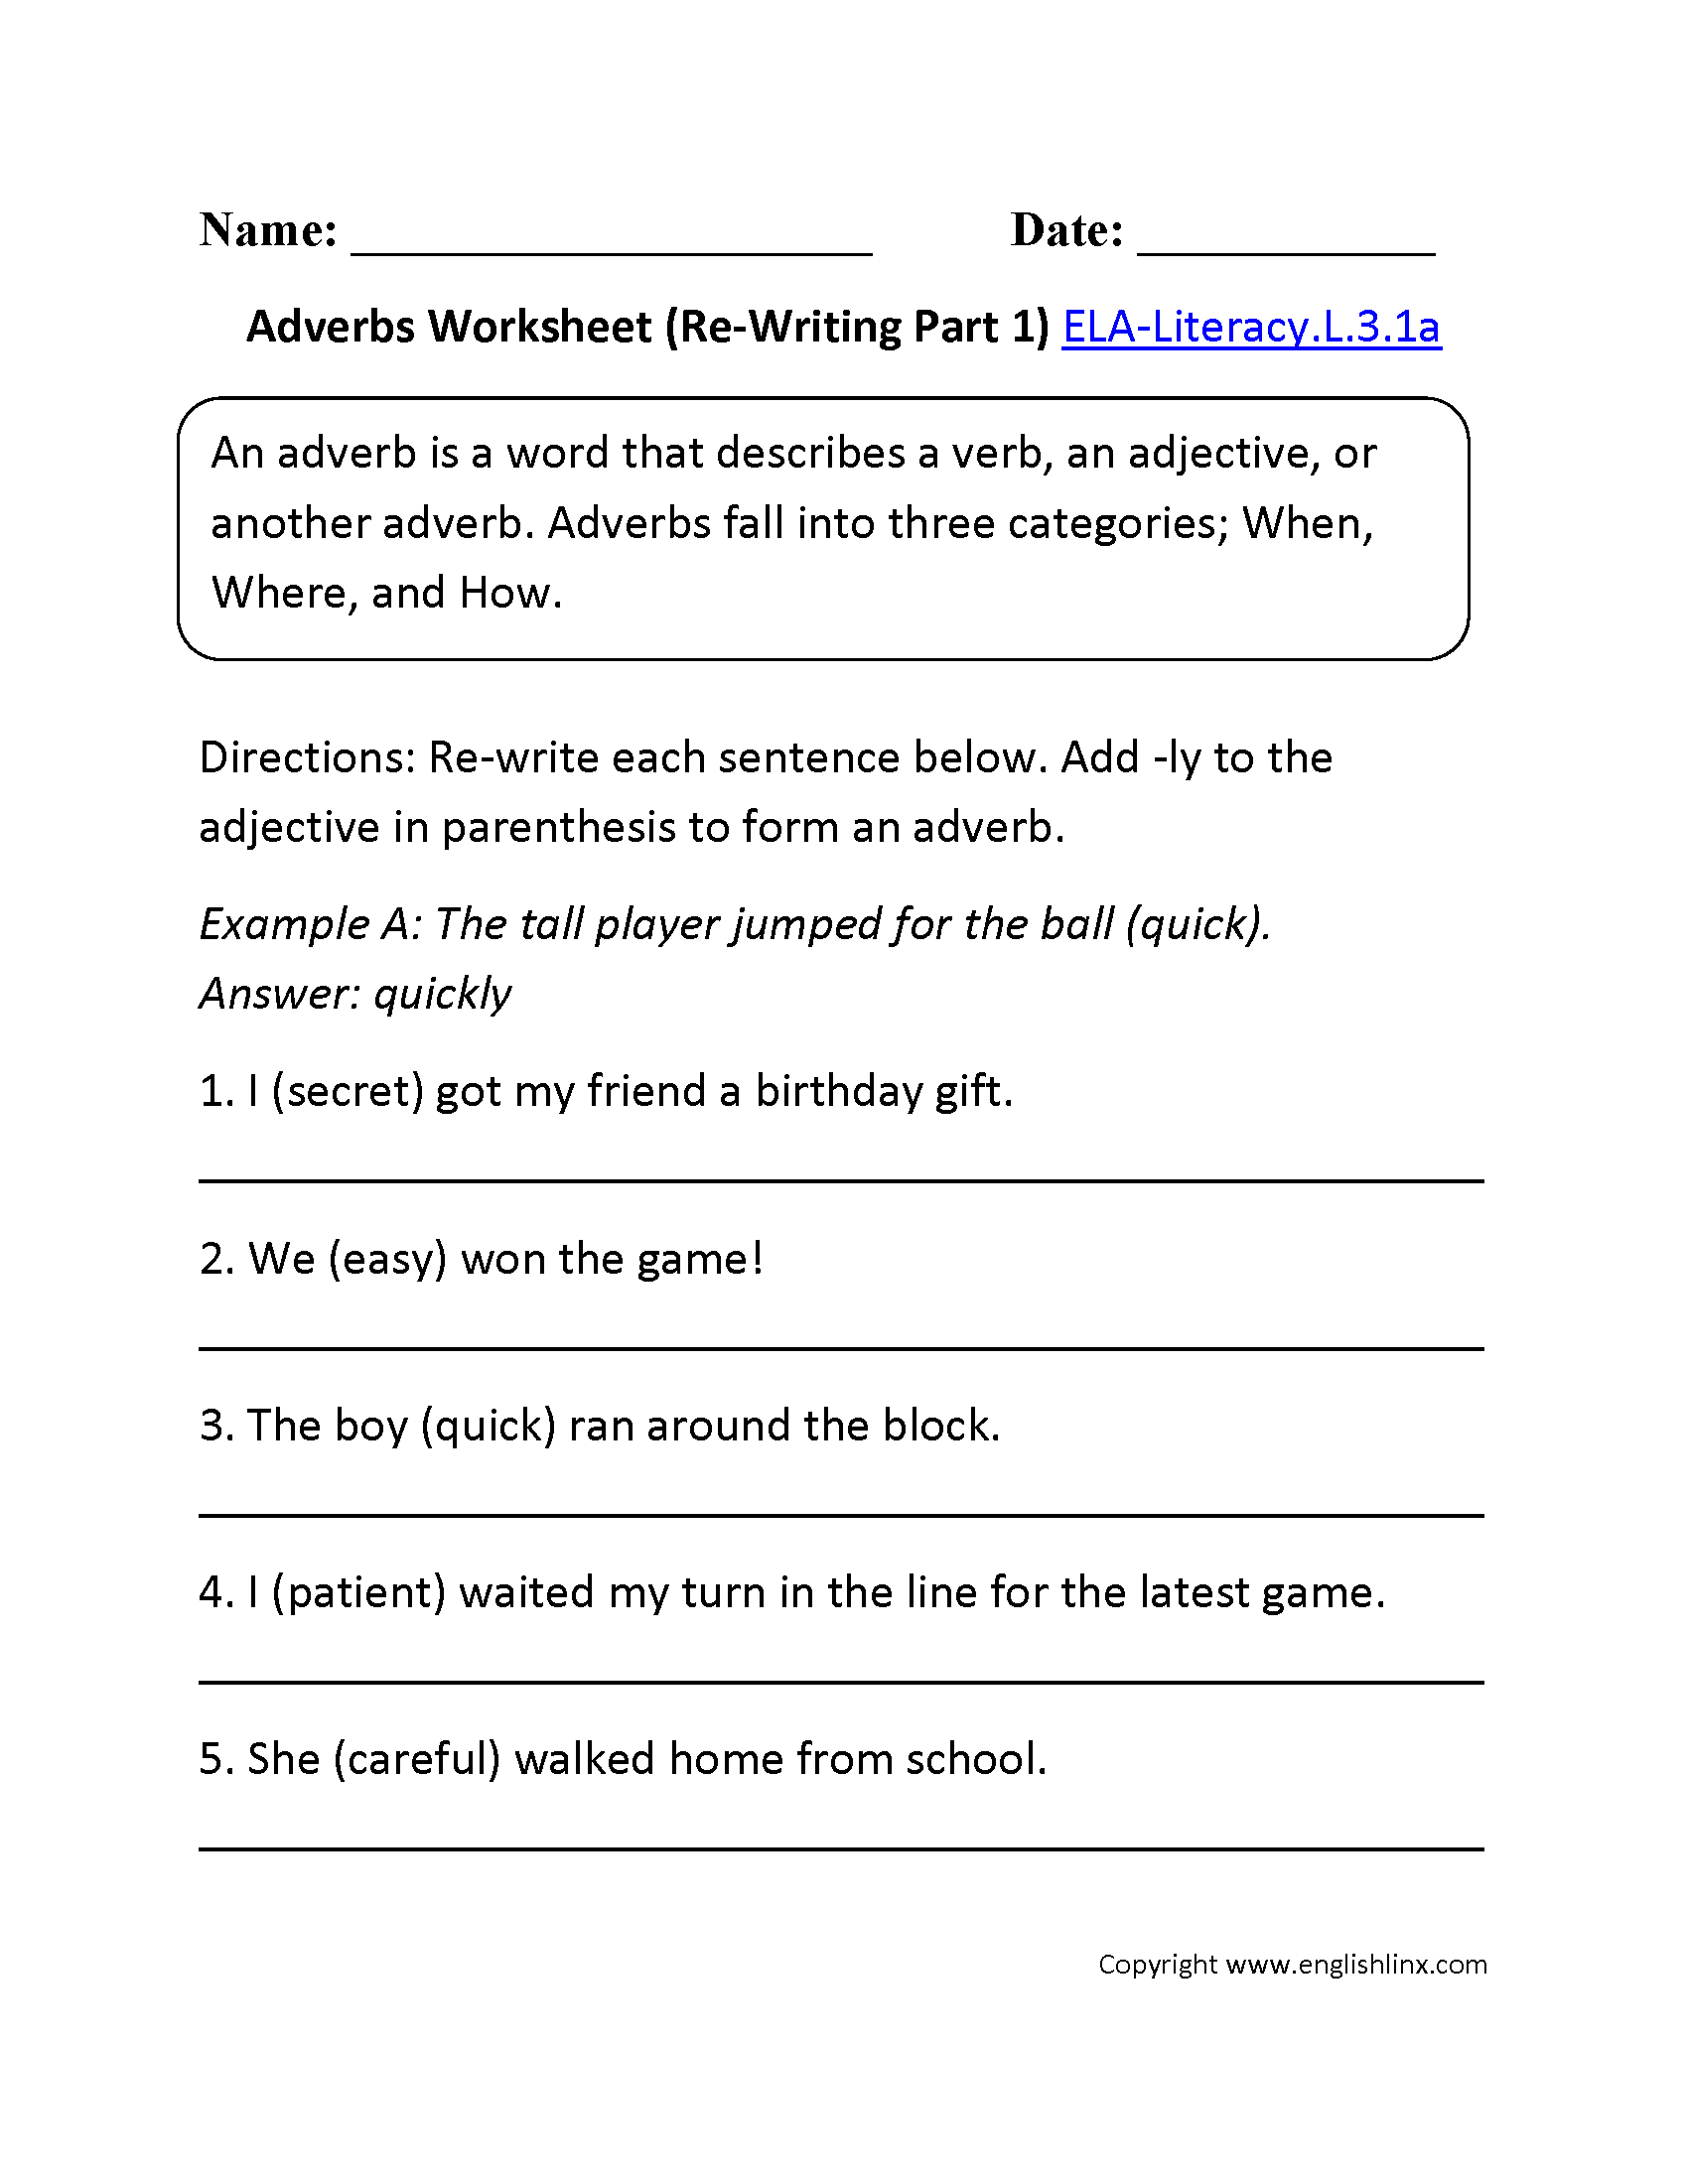 Worksheet Printable Adverb Worksheets verb and adverb worksheets scalien adjectives worksheet 1 ela literacy l 3 1a language worksheet